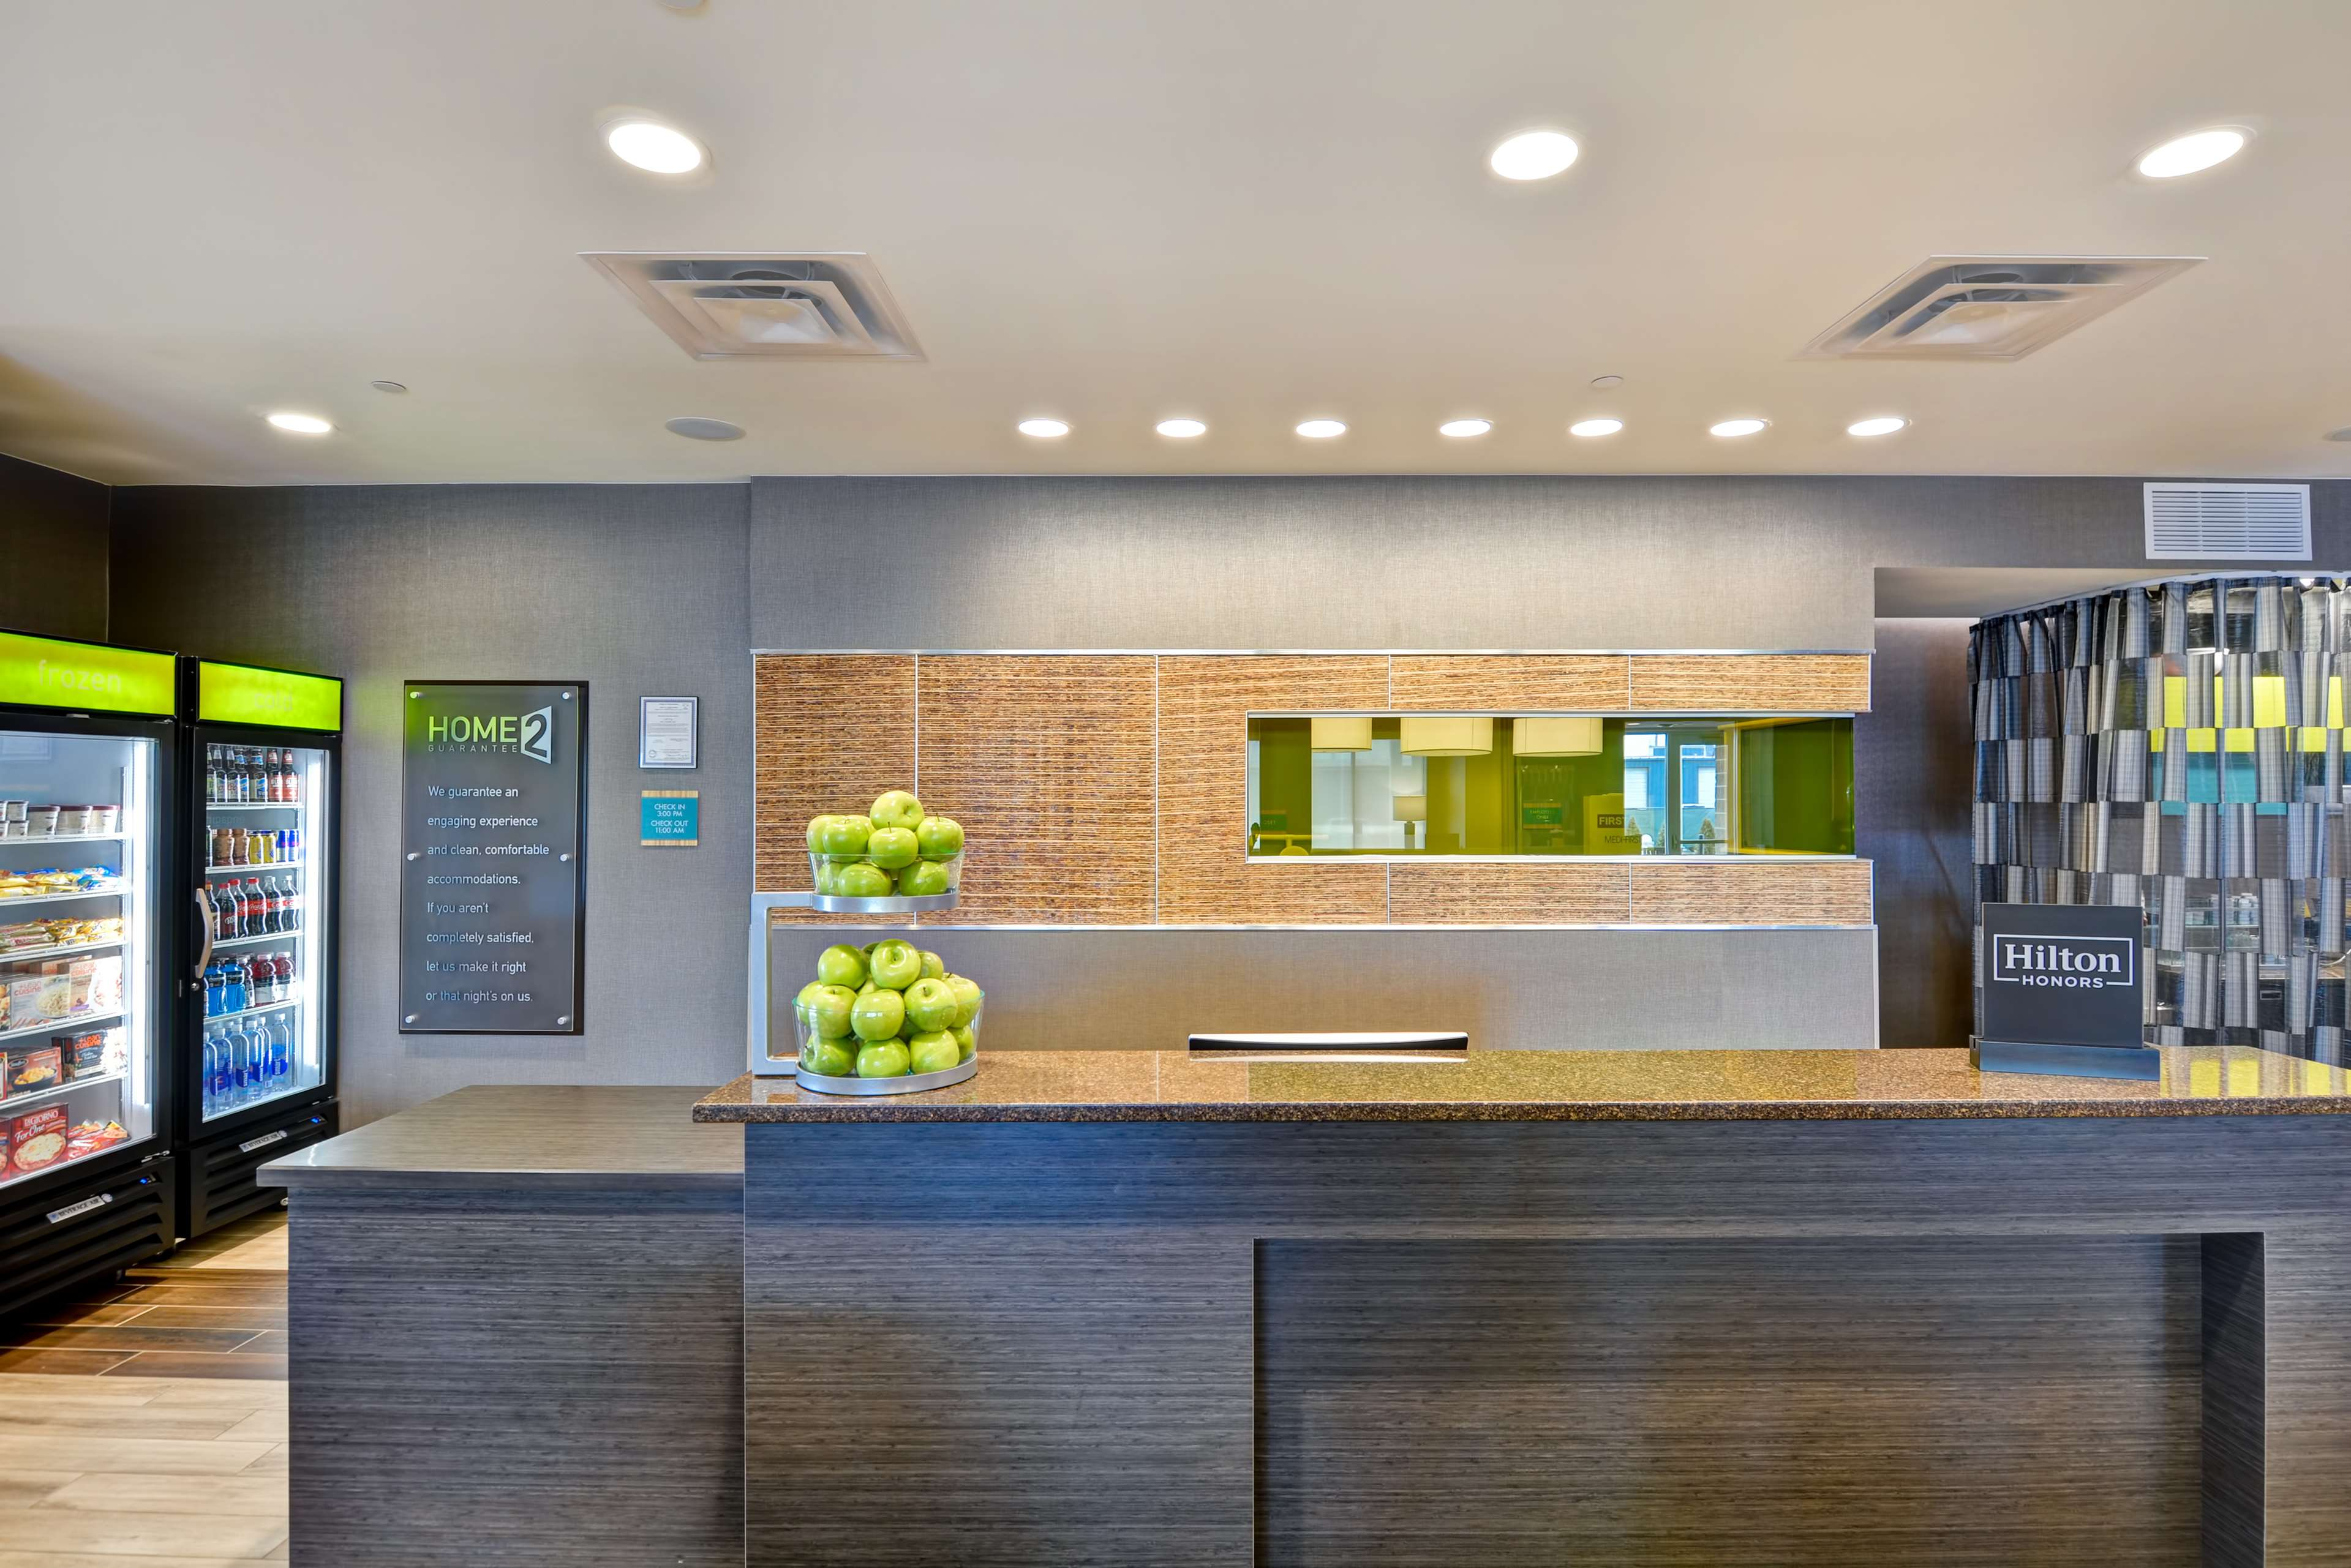 Home2 Suites by Hilton Green Bay image 5